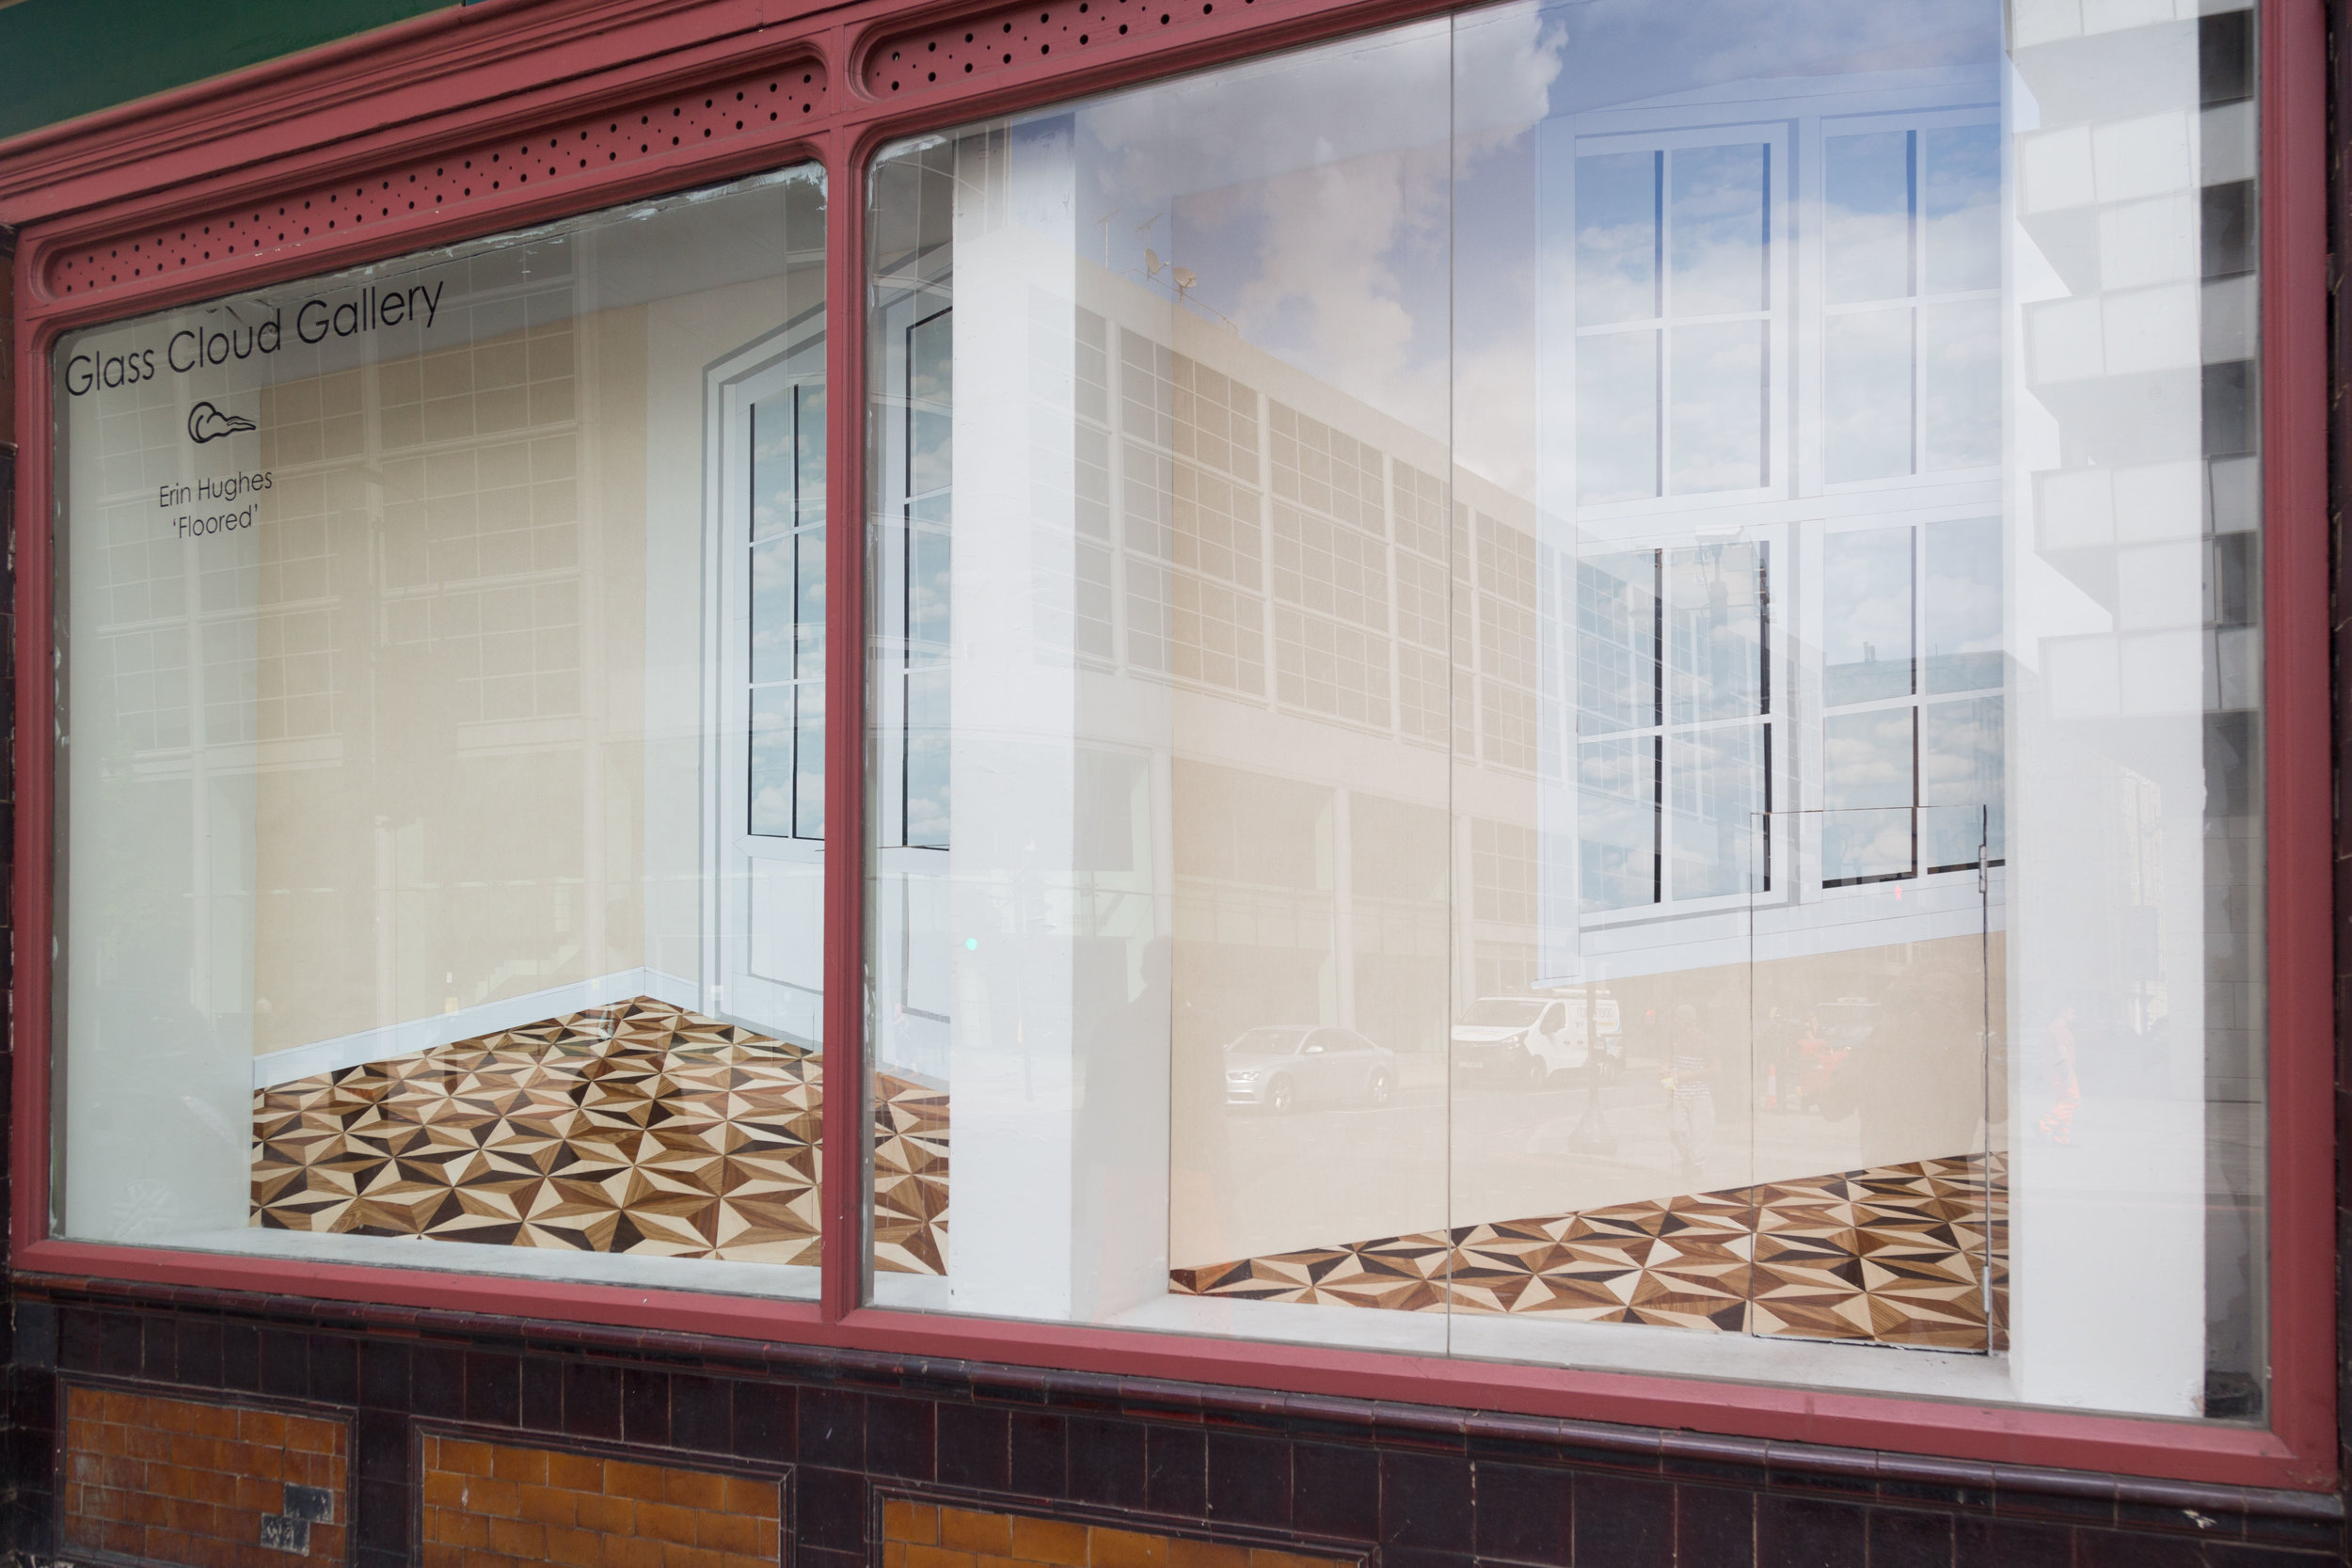 Erin Hughes, 'Floored' at Glass Cloud Gallery. MDF, wallpaper and folie.